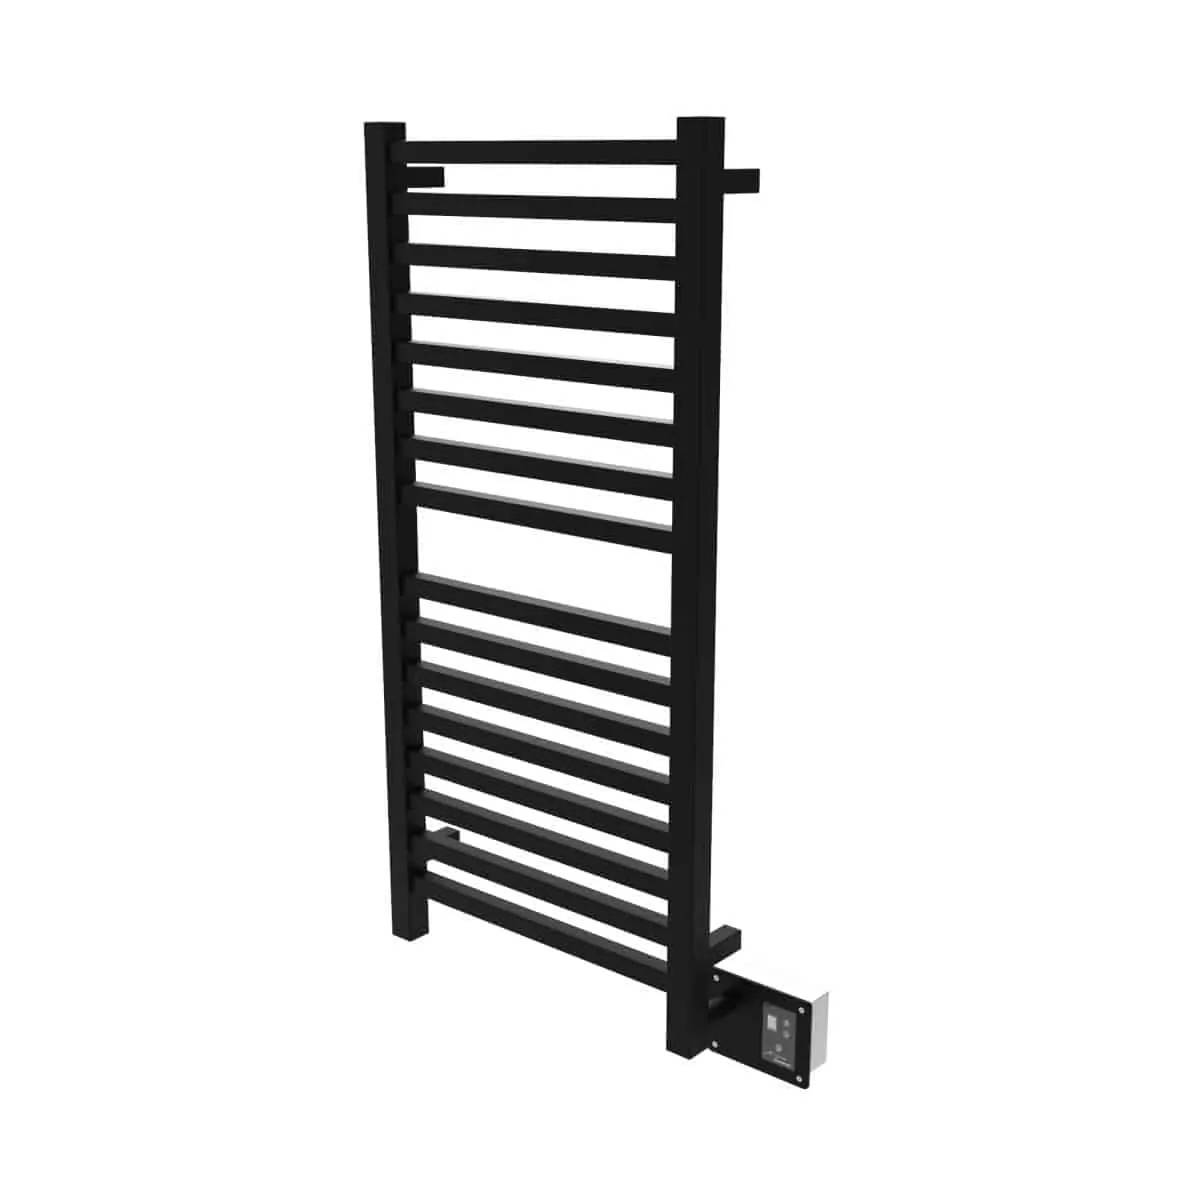 Amba Q2042MB Quadro Heated Towel Rack - Matte Black